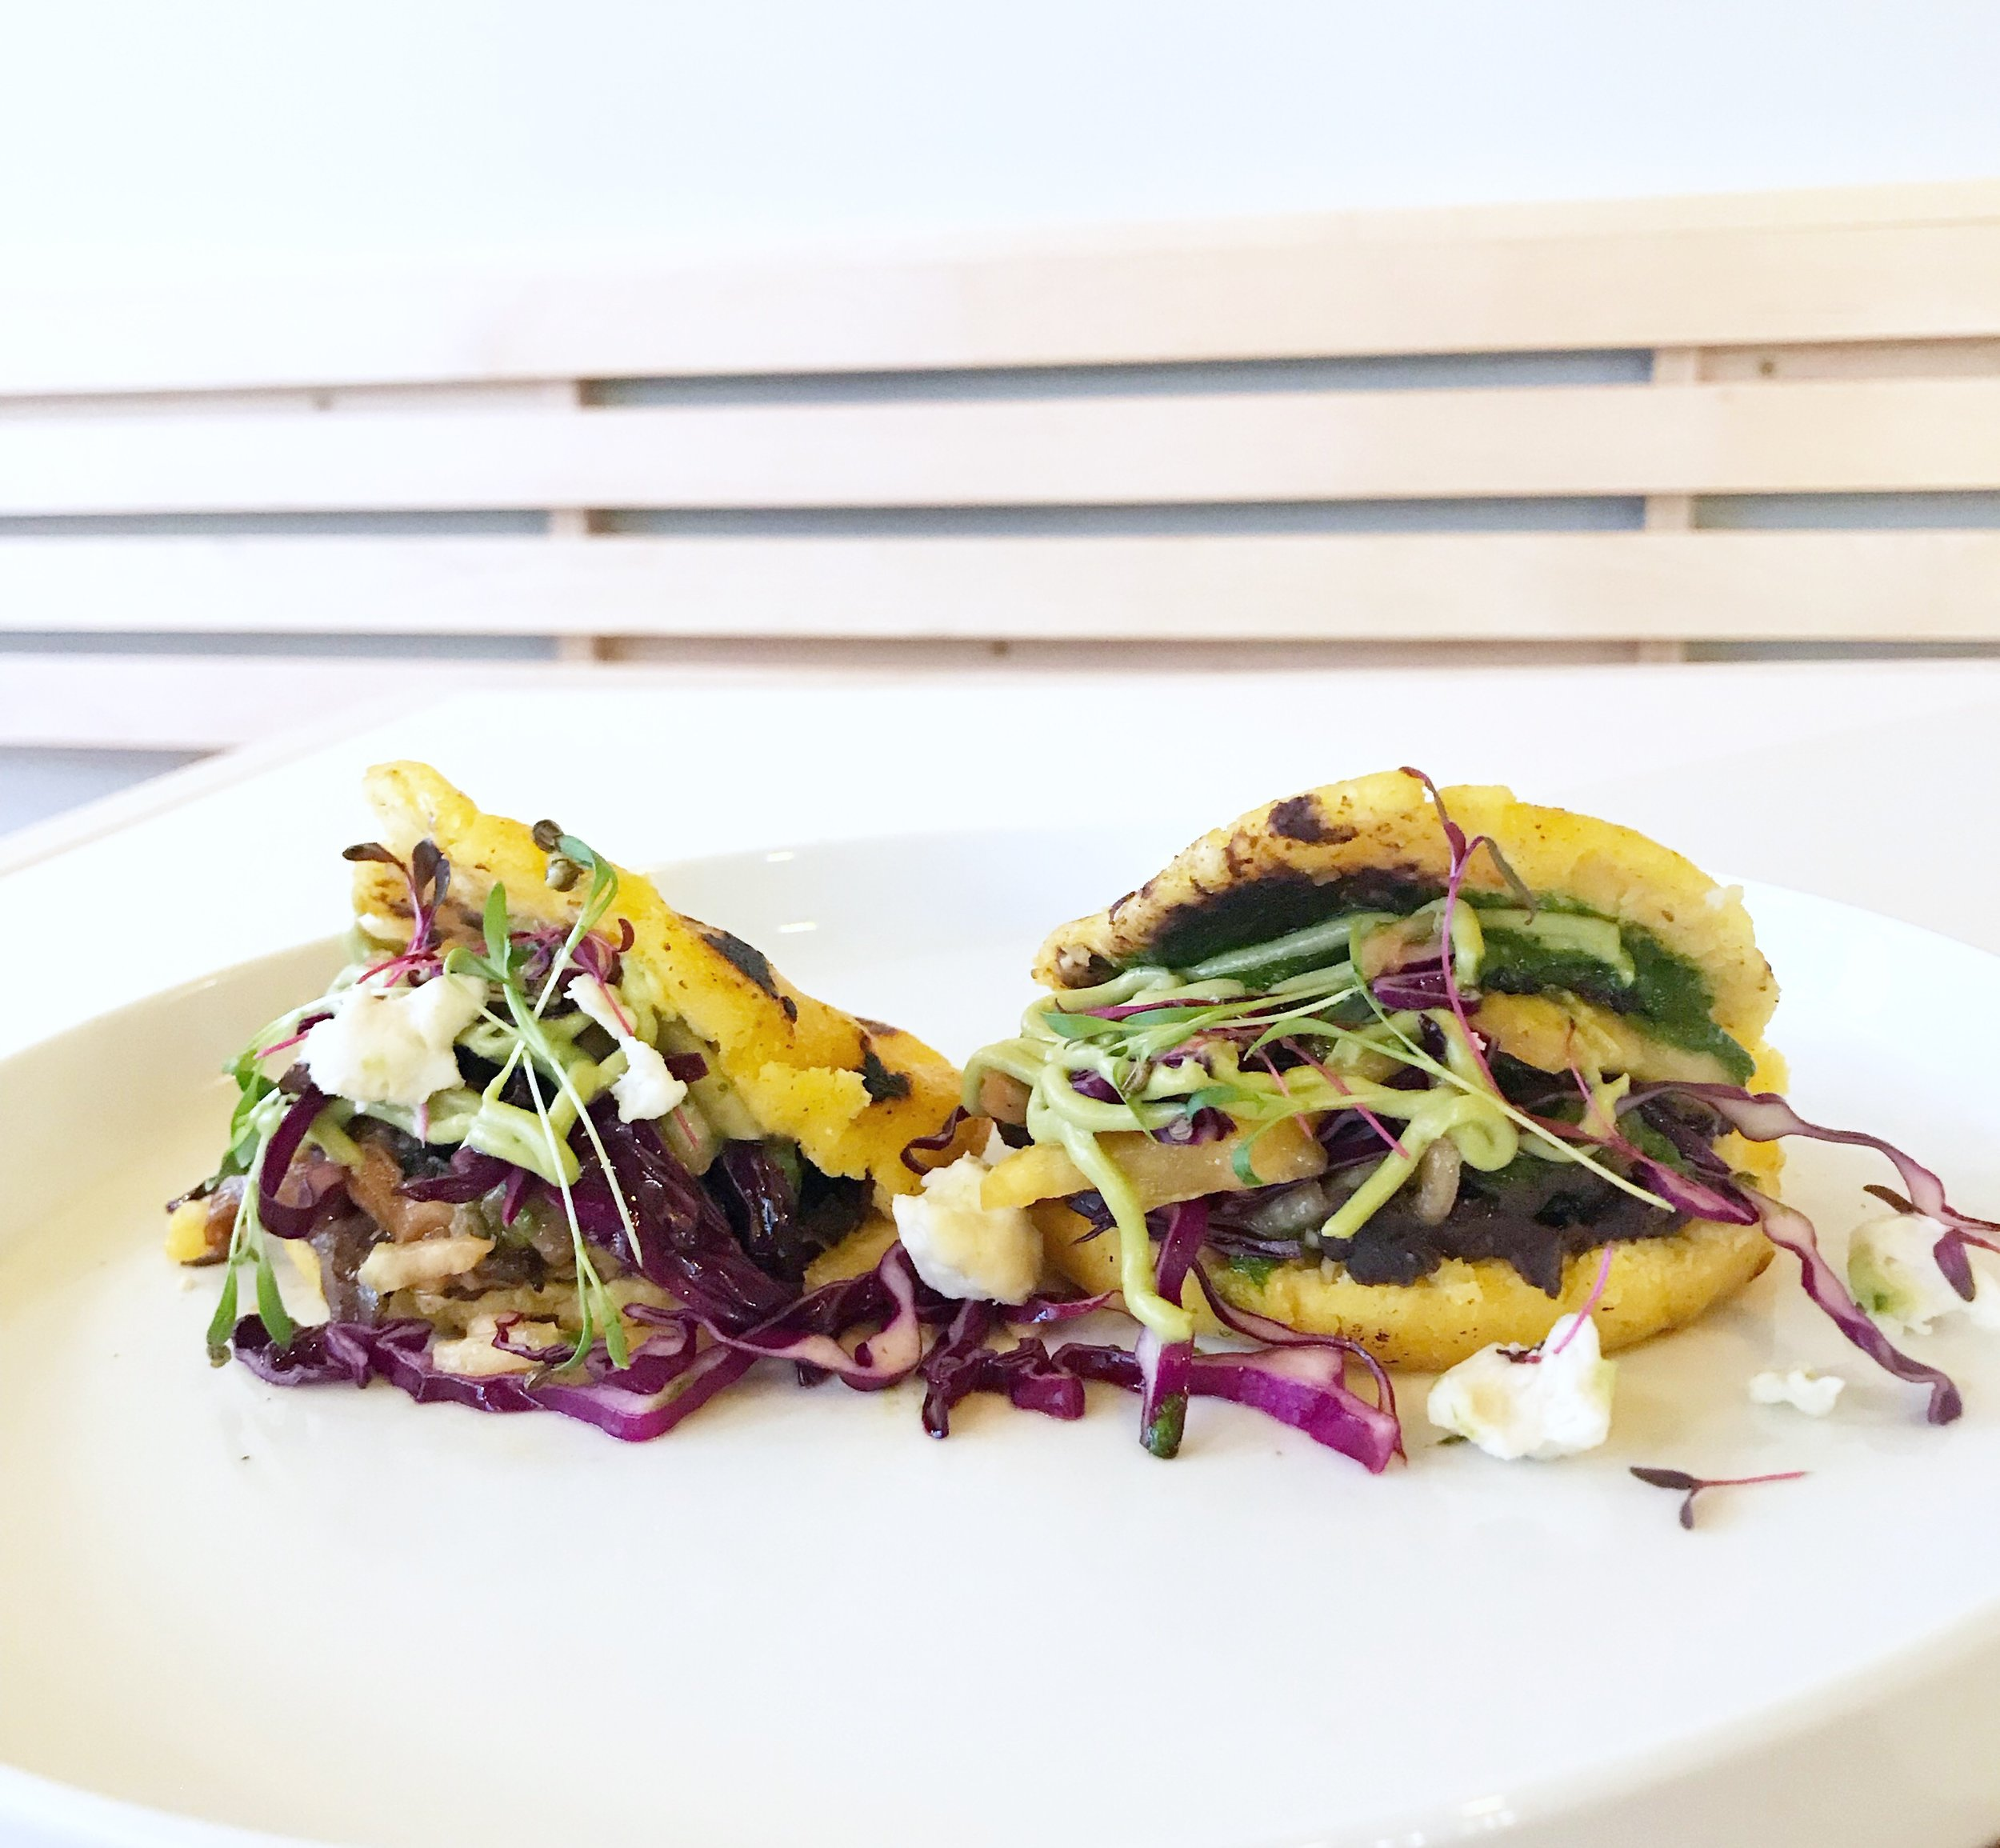 Equally beautiful and delicious vegan arepas from Naive in Butchertown